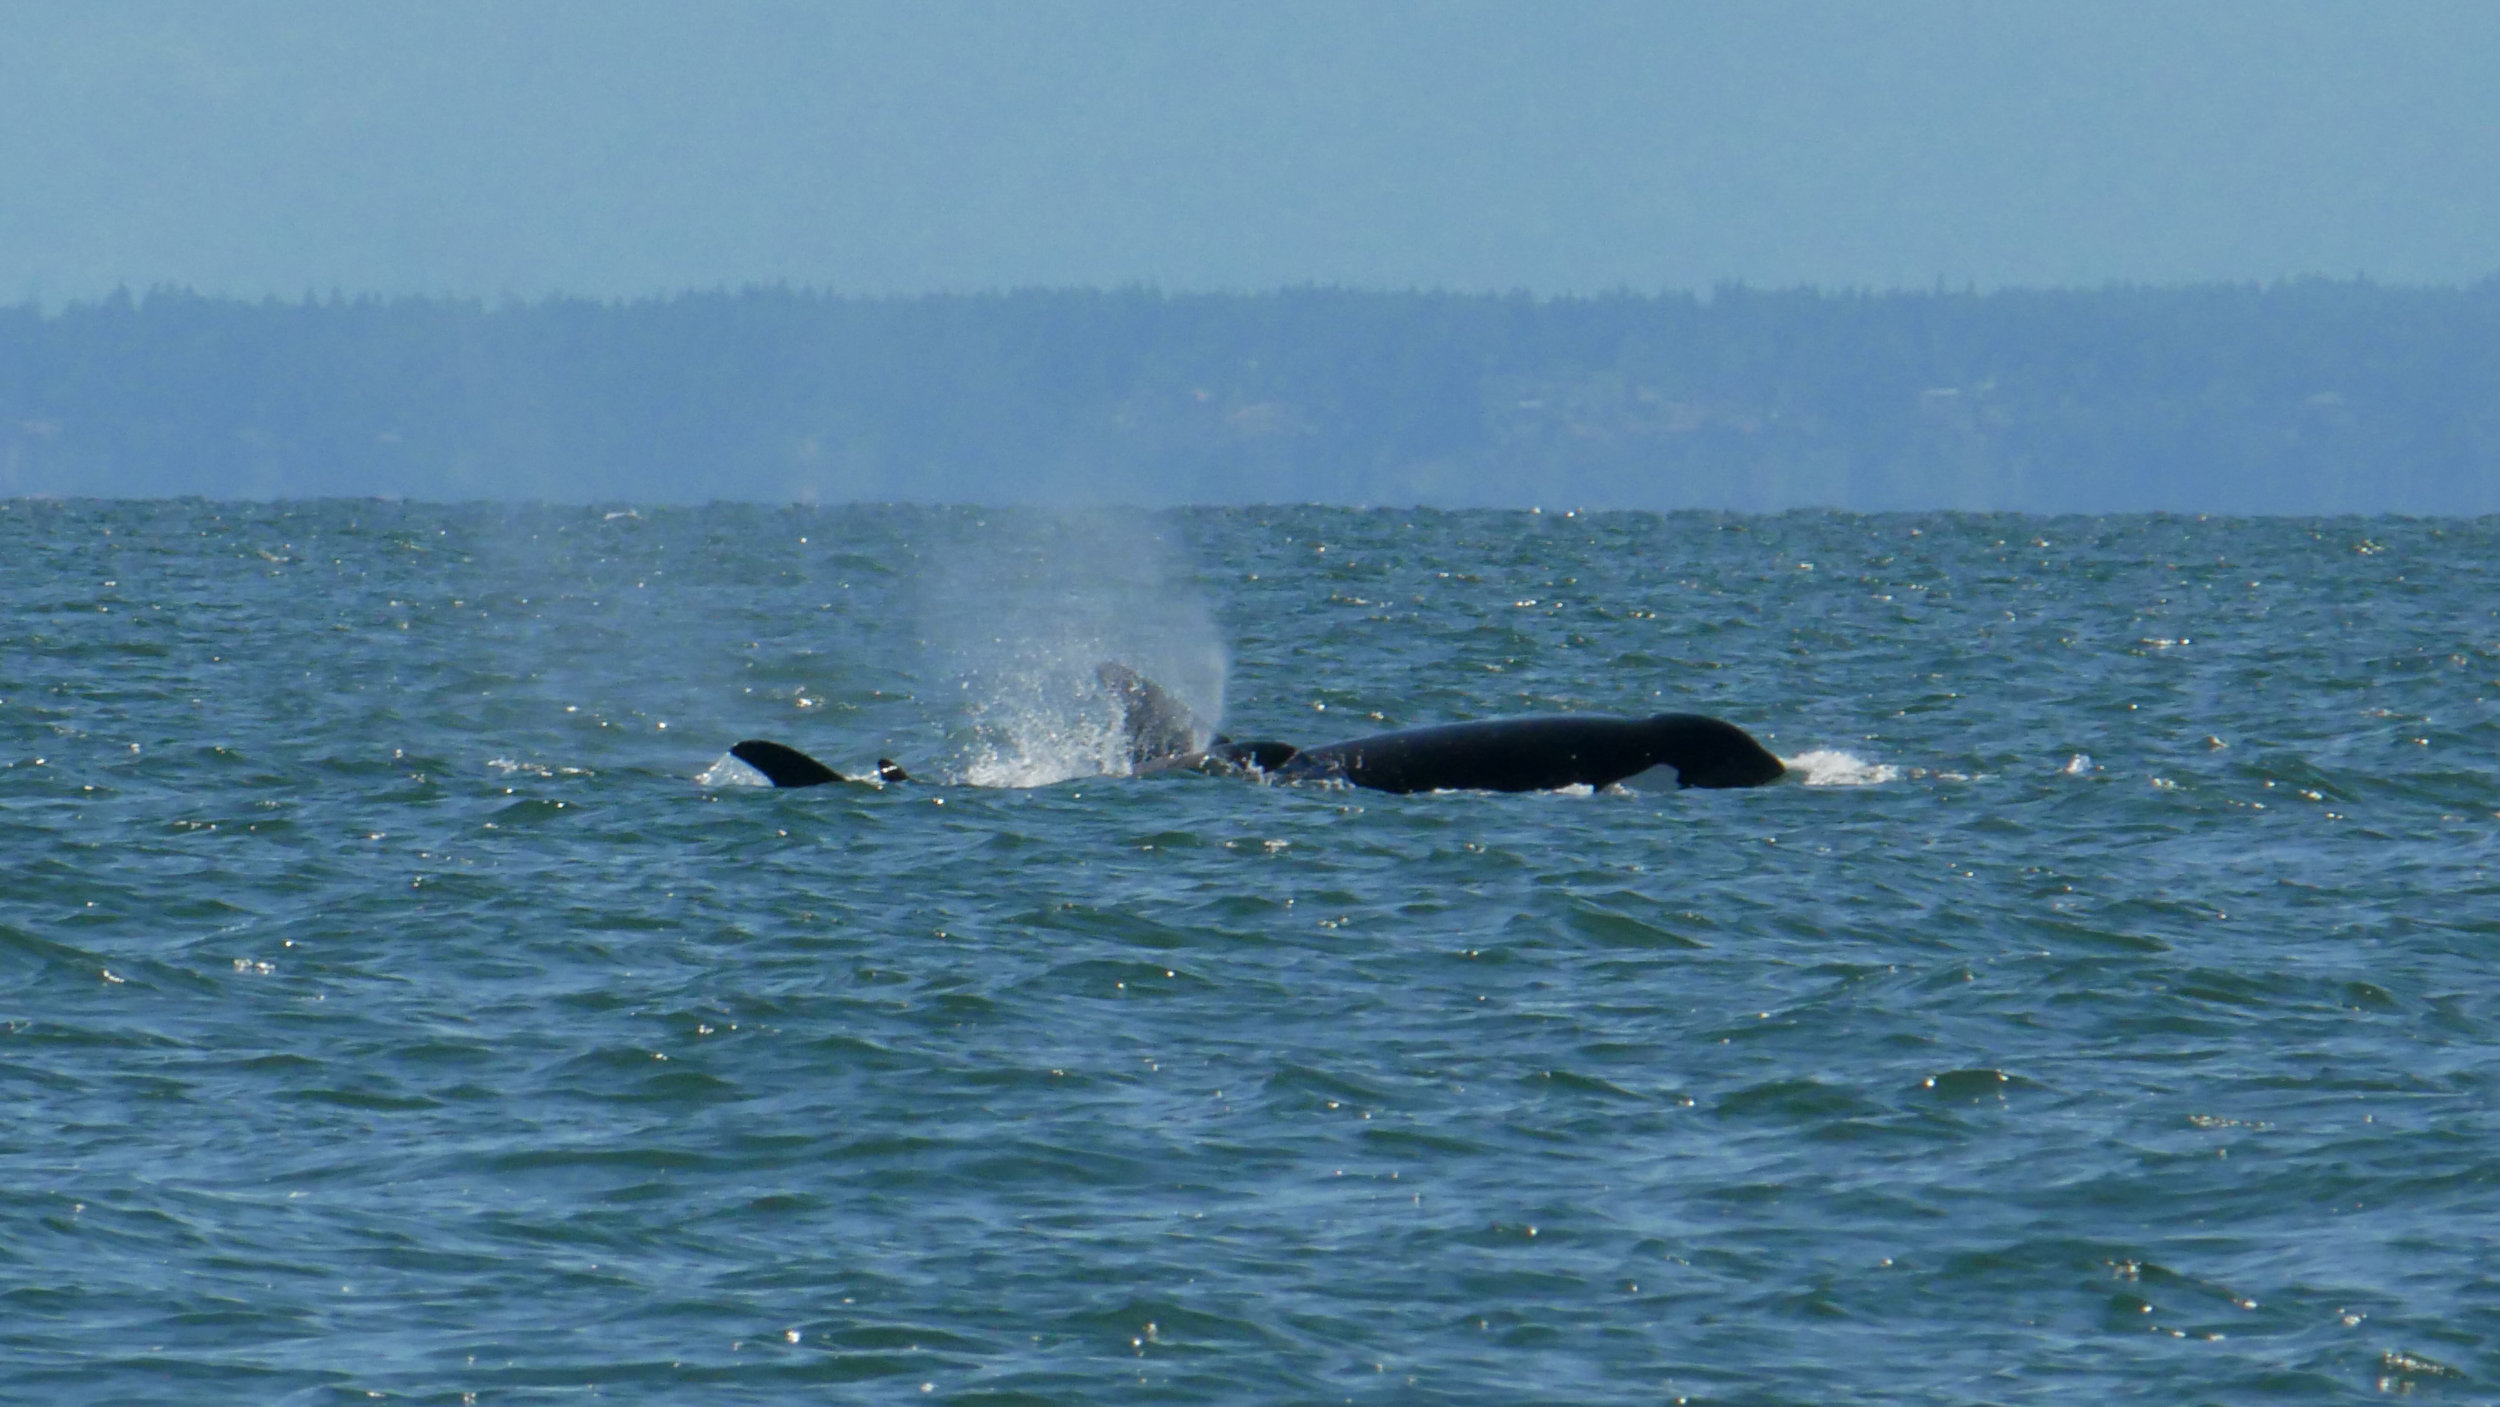 Although the dorsal isn't clear in the picture the distinct shape of the front of the eye patch can be seen coming out of the water! Photo by Val Watson.